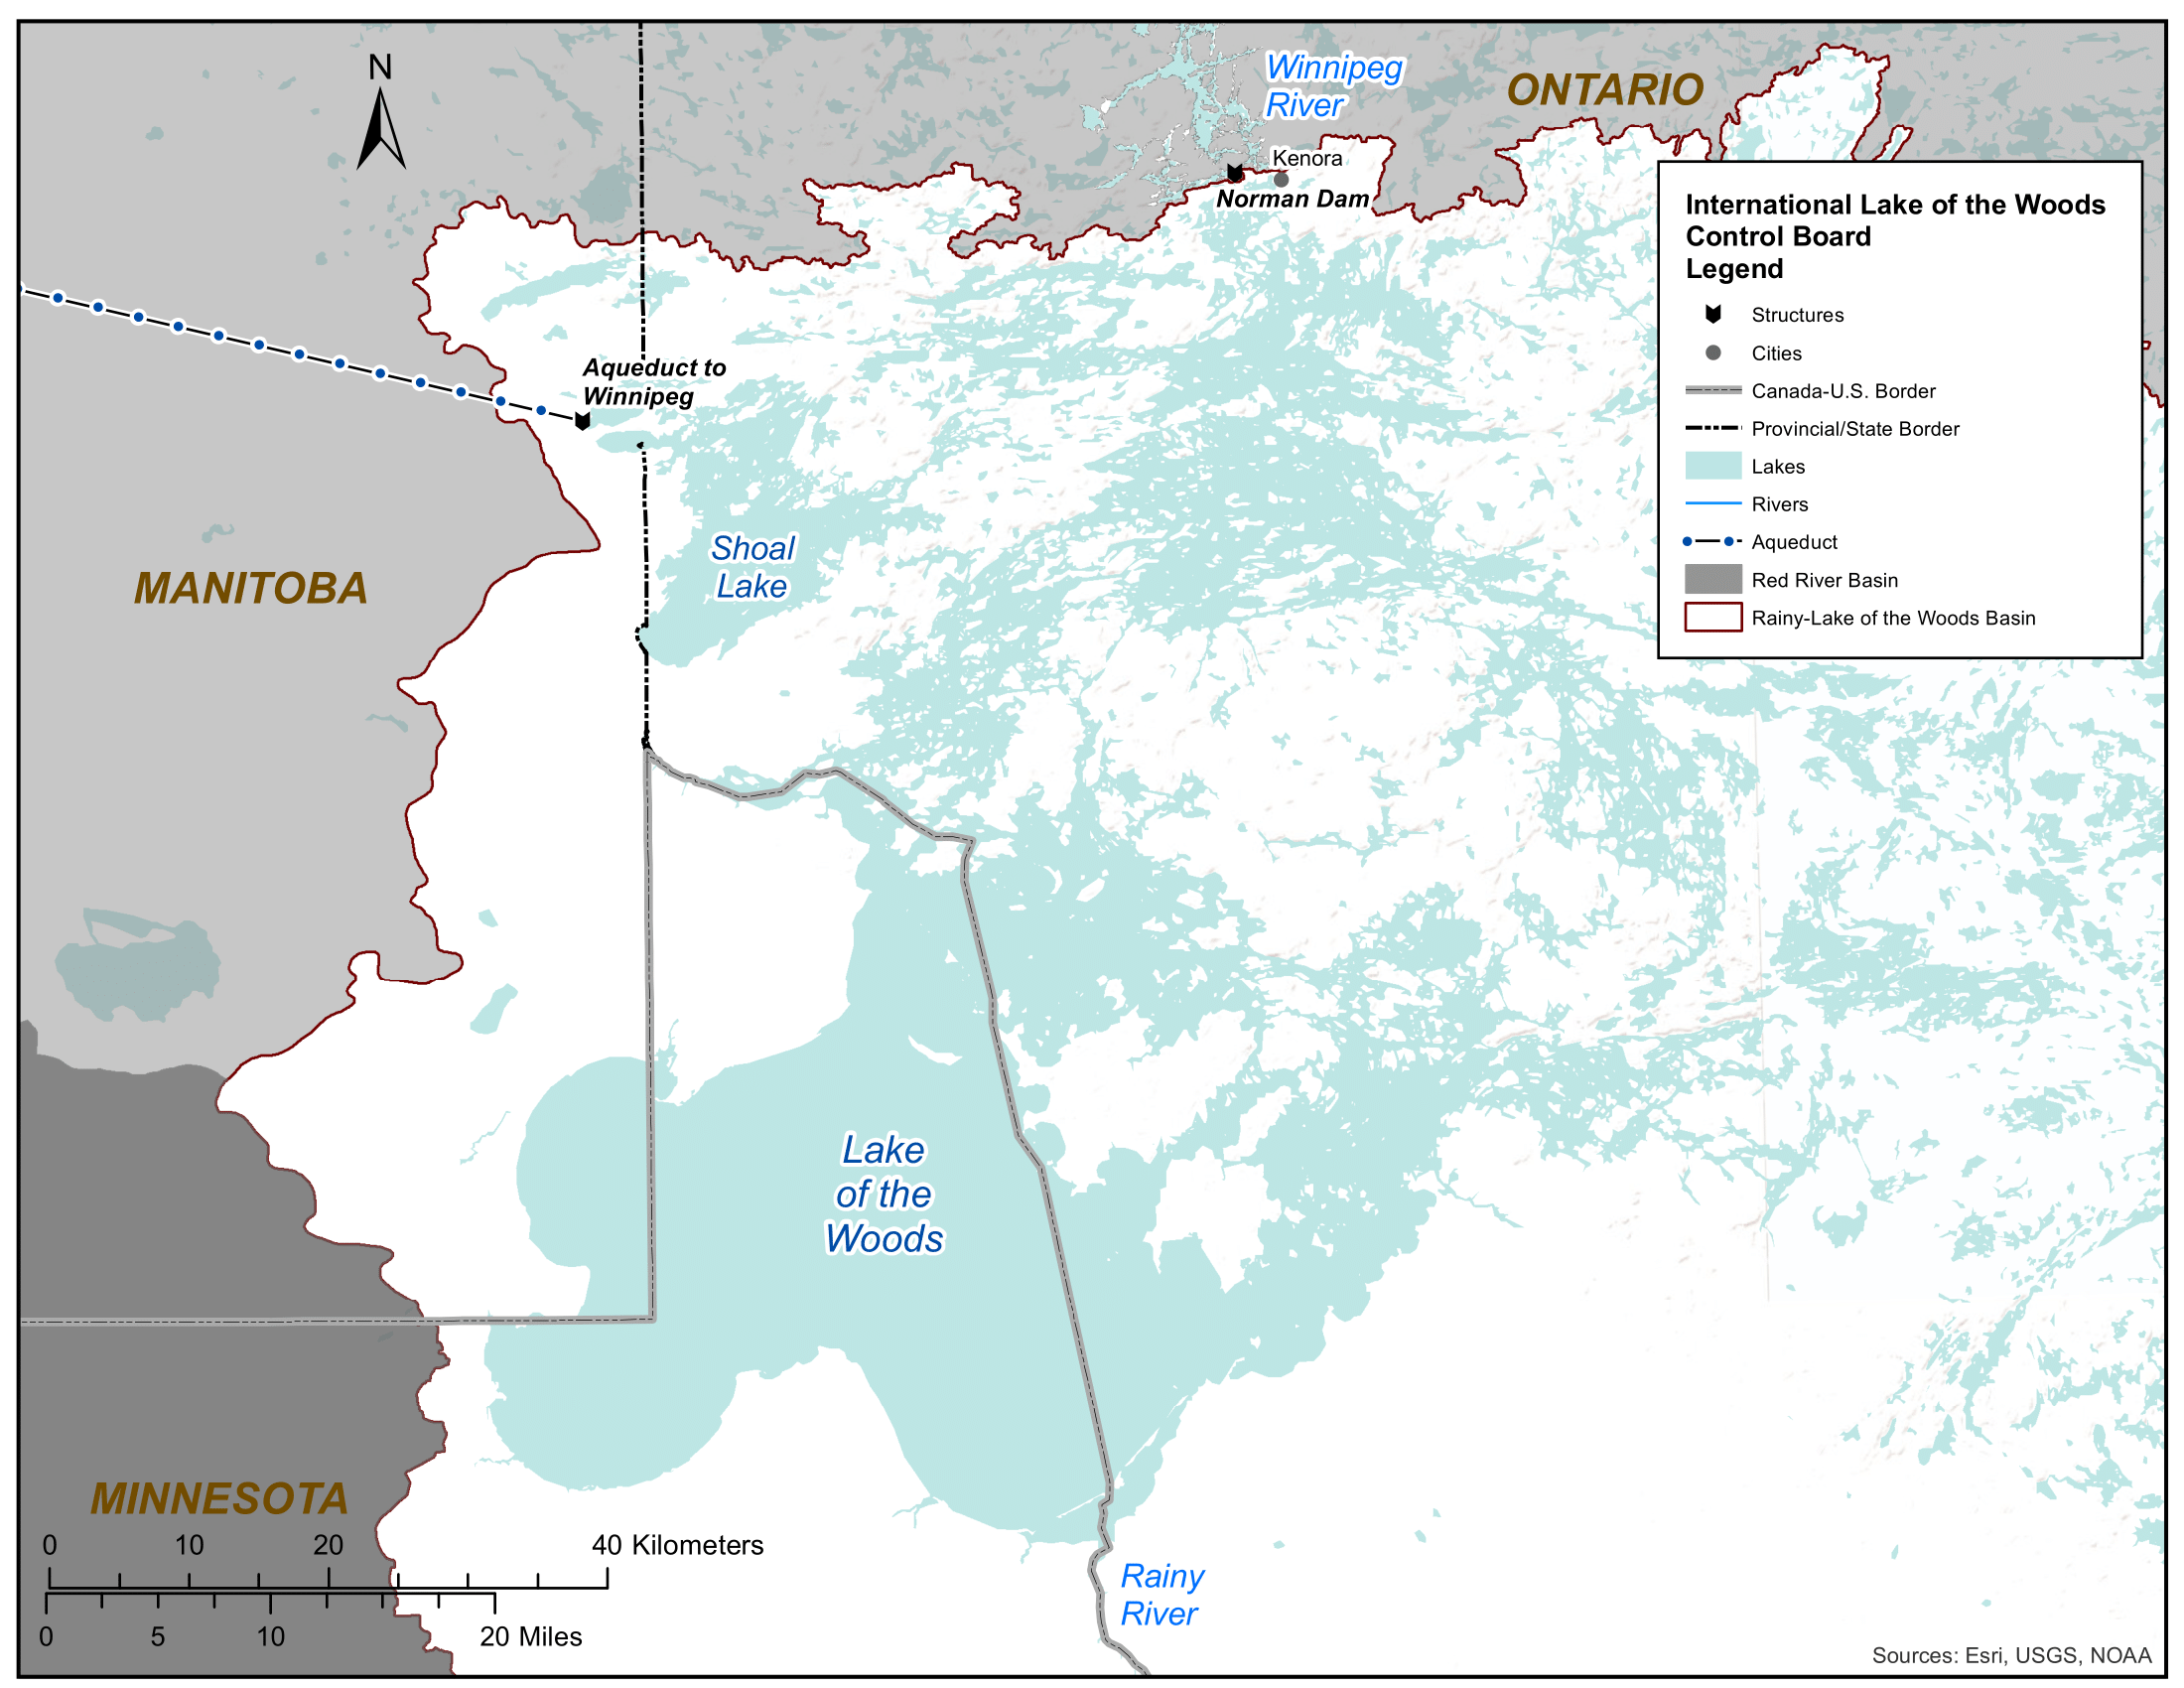 Map of Lake of the Woods and Norman Dam